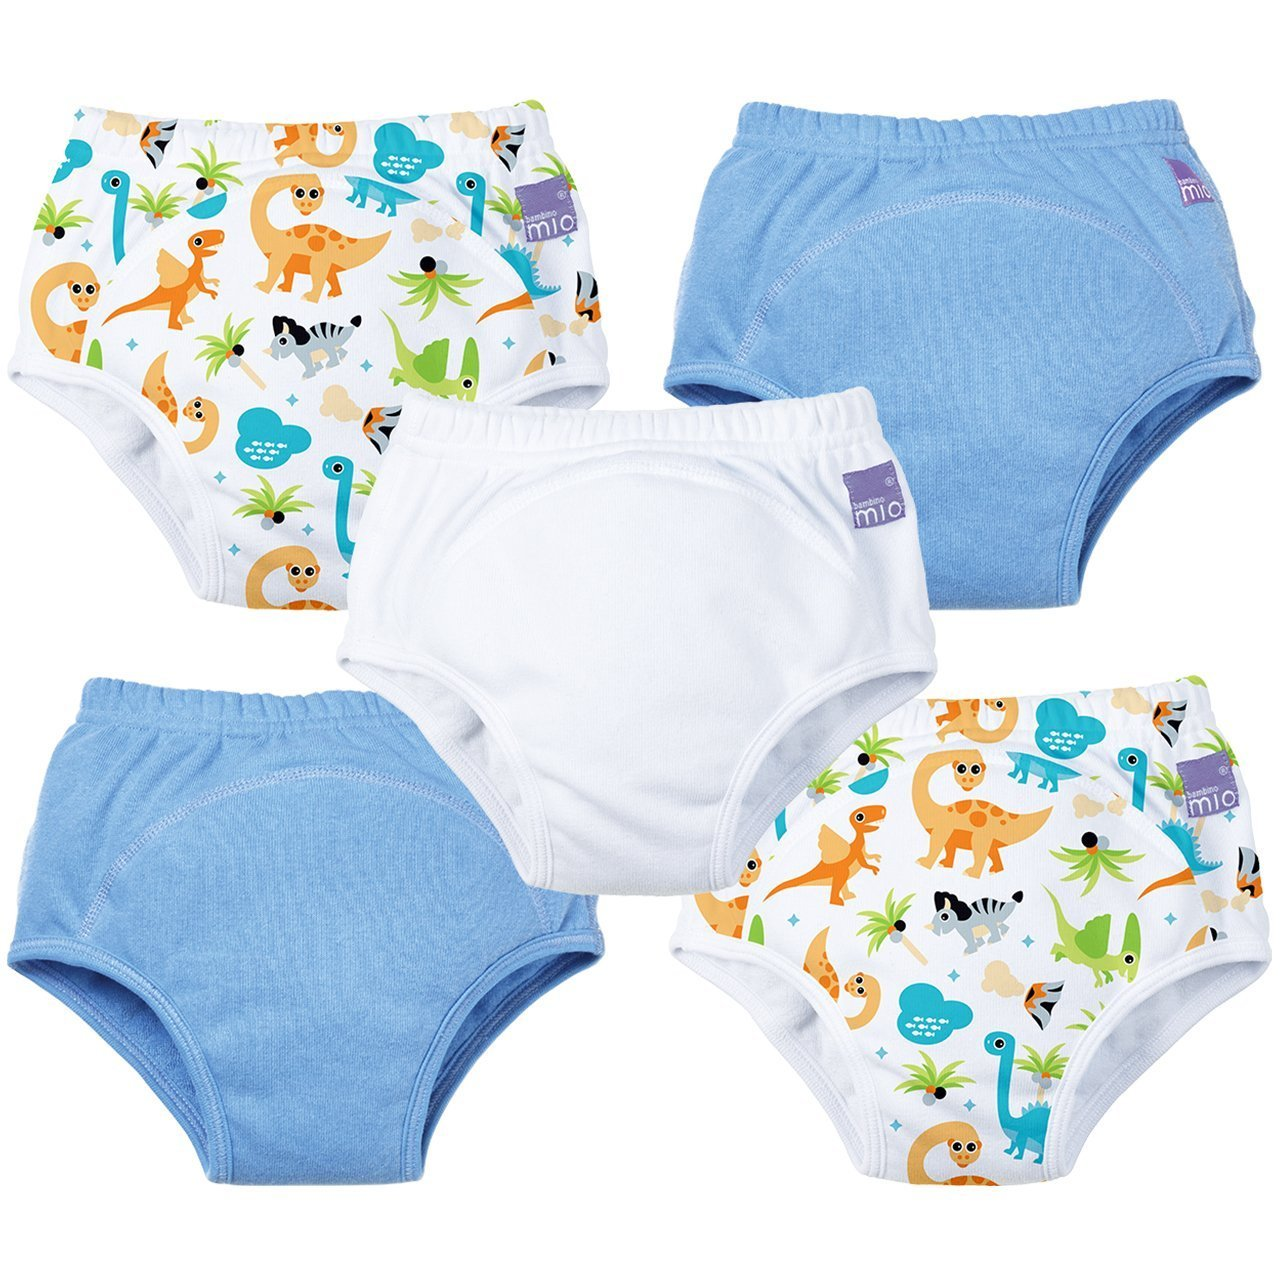 Potty Training Pants Bambino Mio Fairy 18-24 Months 5 Pack